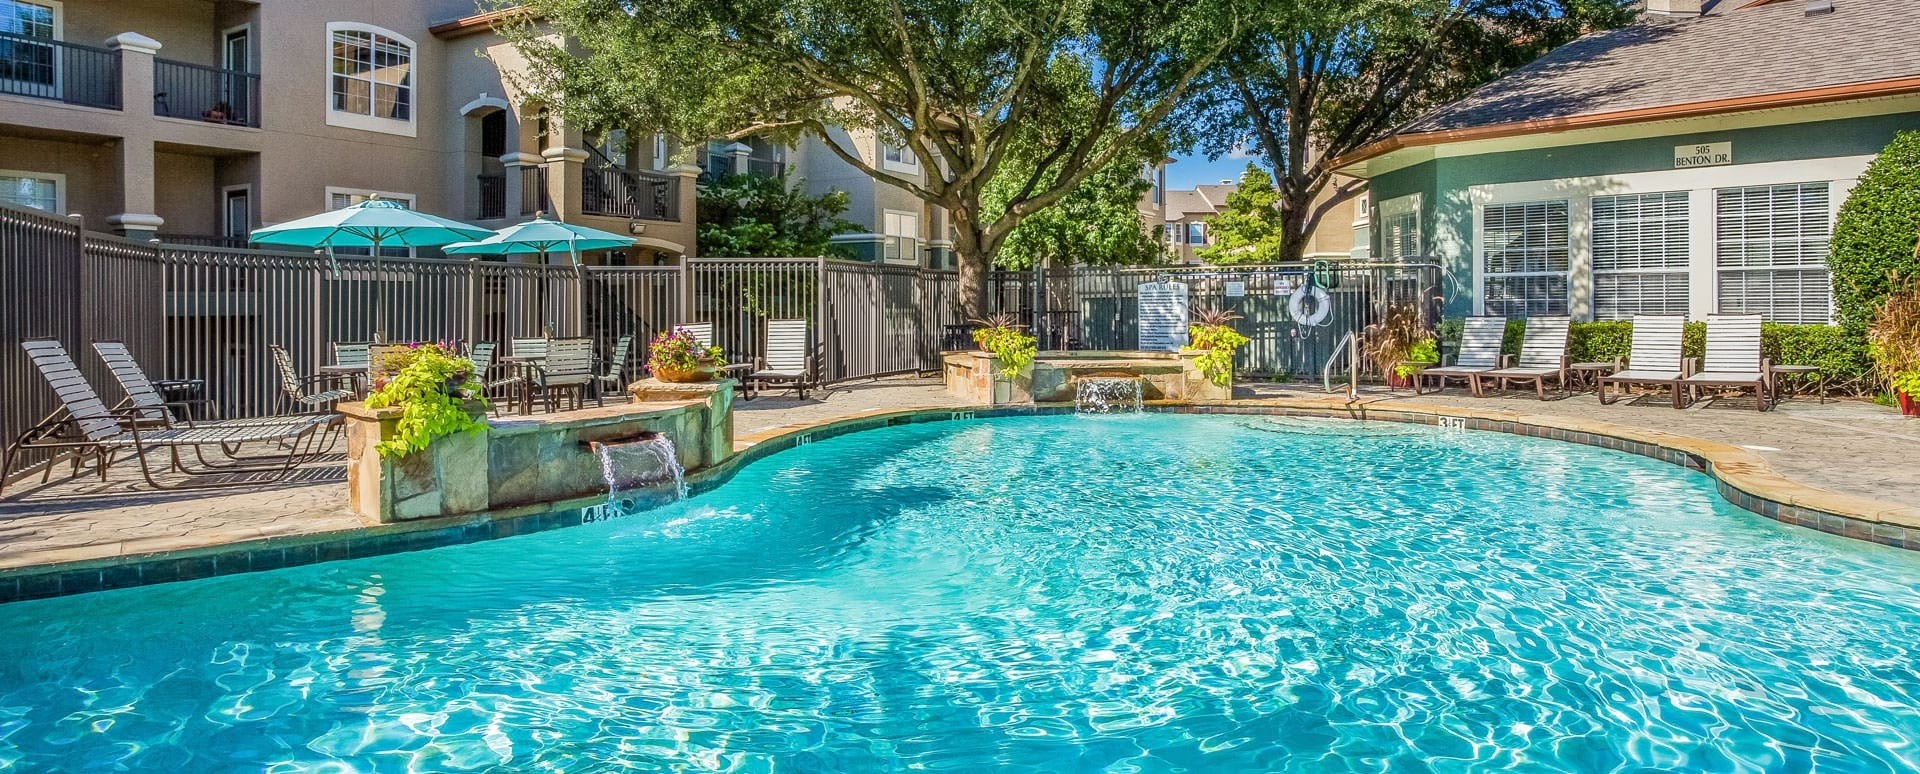 Allen apartment complex with pool